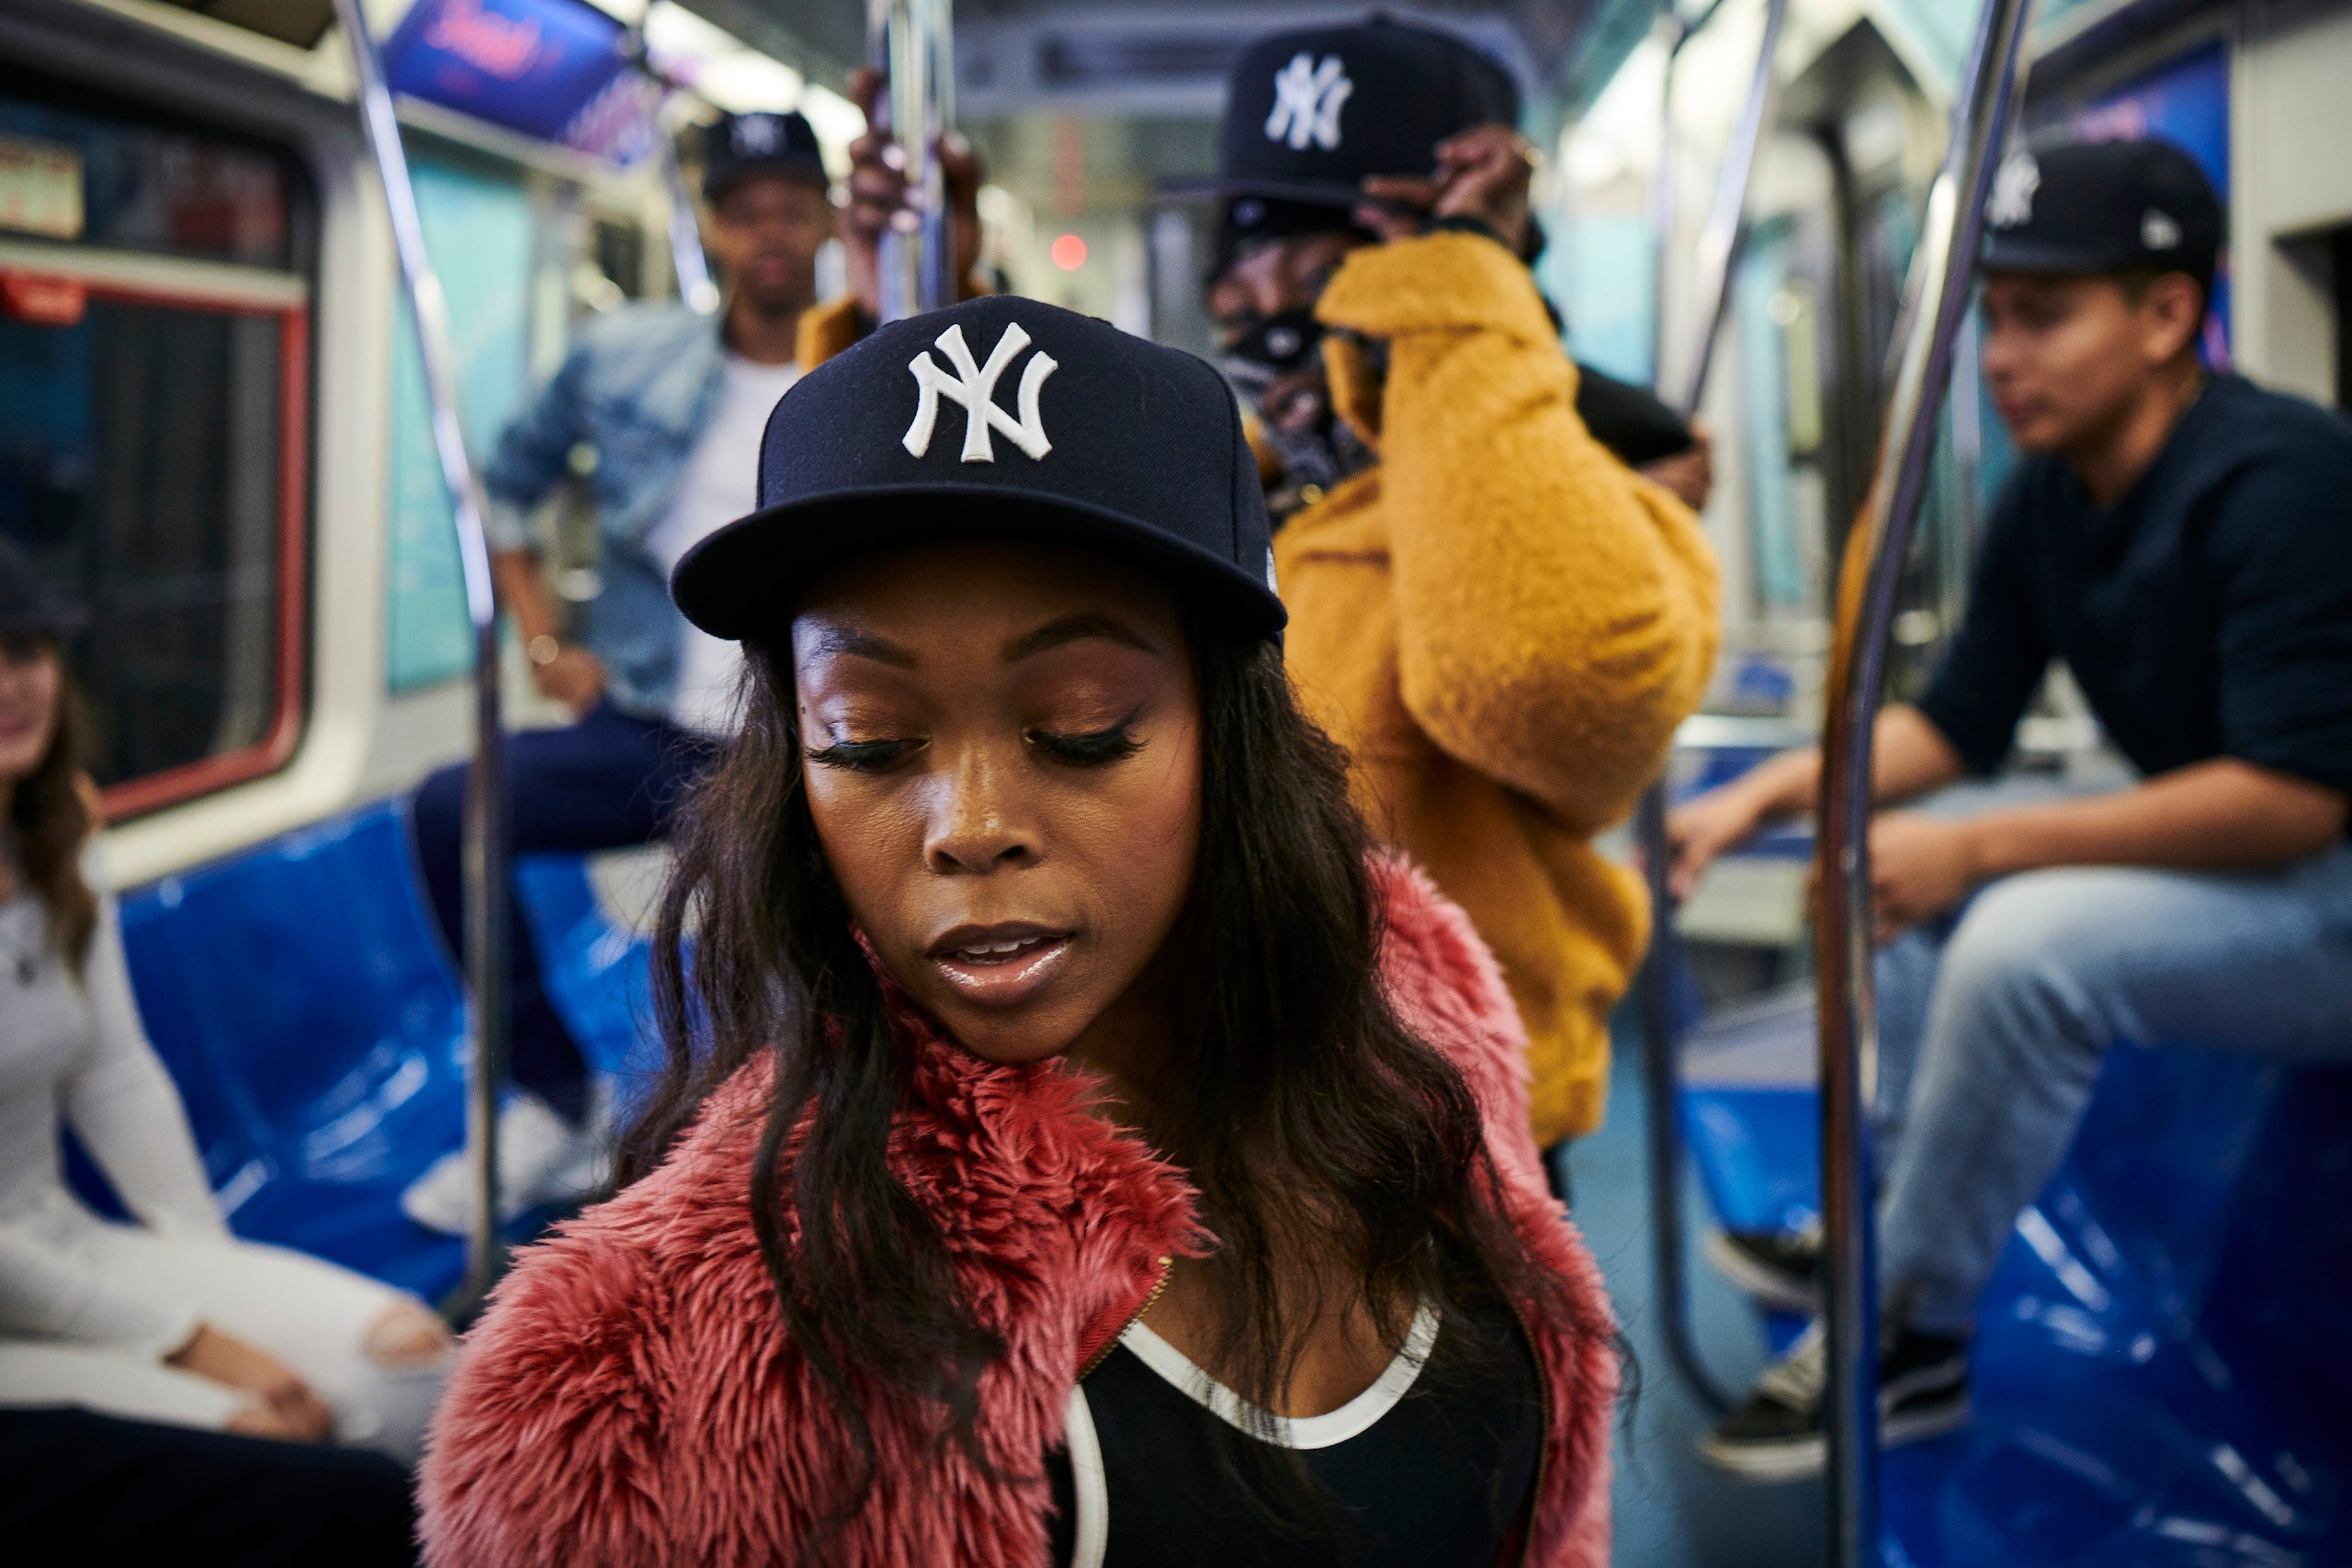 Girl Wearing Yankees Fitted Hat